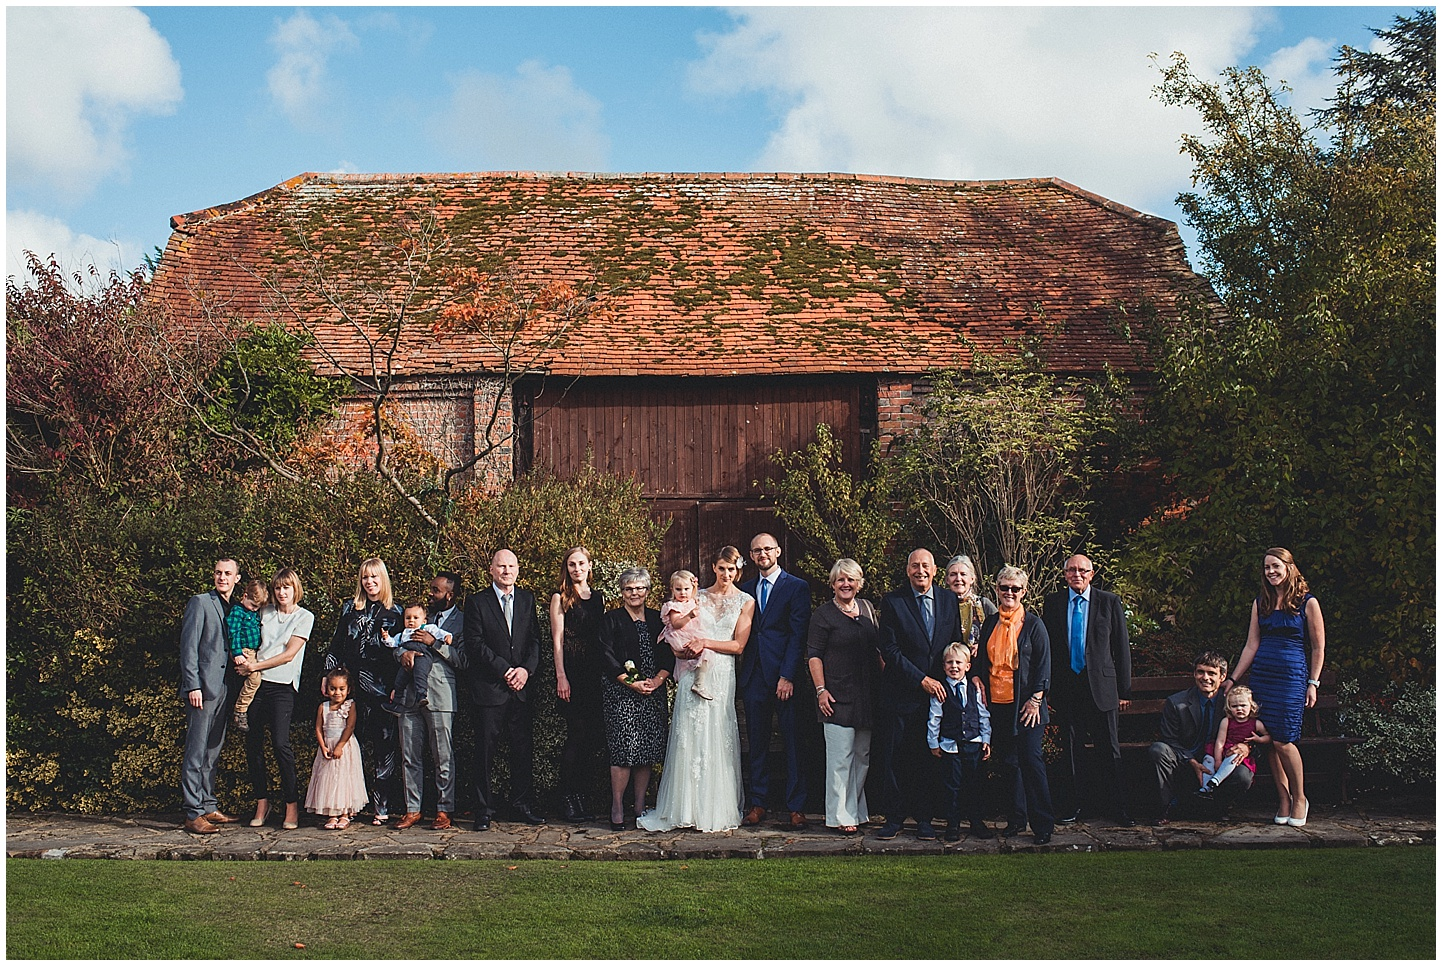 Hanna & Dan's Montagu arms beaulieu wedding